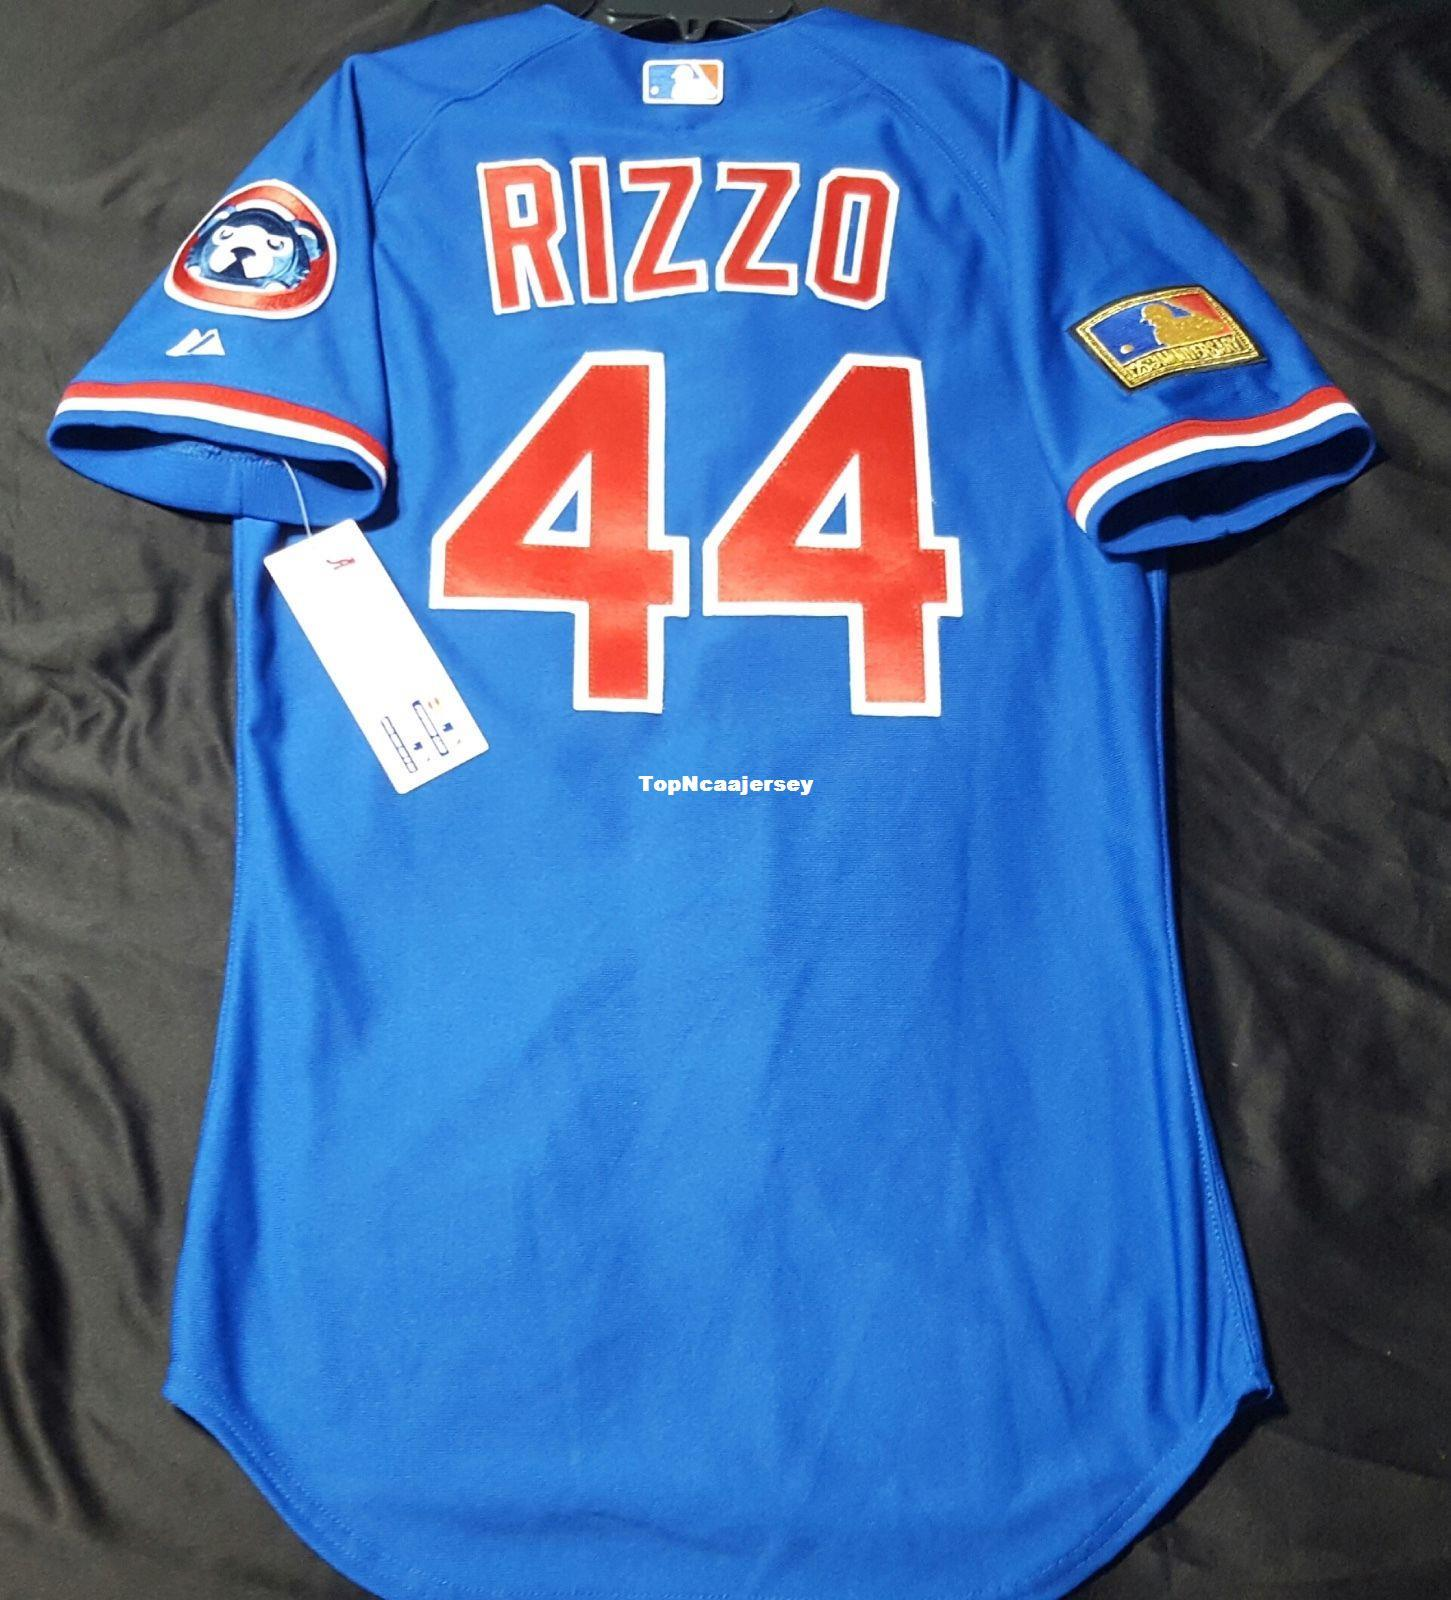 los angeles d0a16 df1be Cheap! Top CHICAGO 44# TBTC ANTHONY RIZZO ON FIELD Jersey Mens Stitched  Wholesale Big And Tall SIZE XS-6XL shirt jerseys